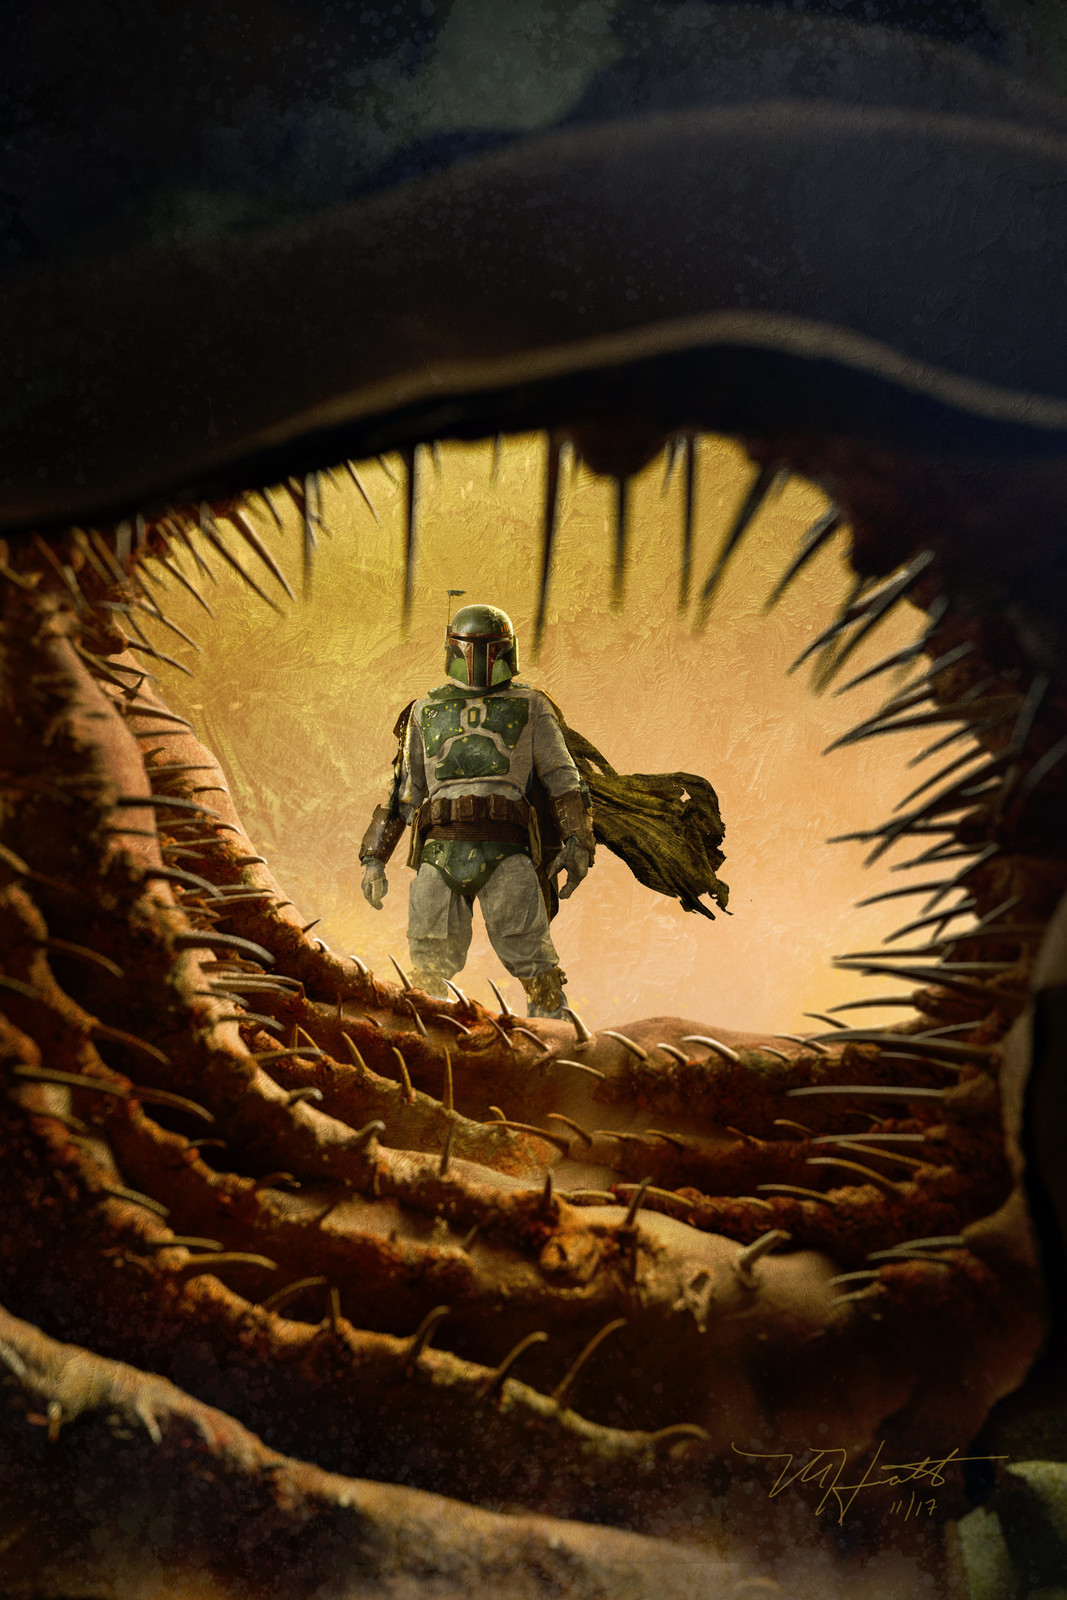 Bobafett Escapes the Sarlacc